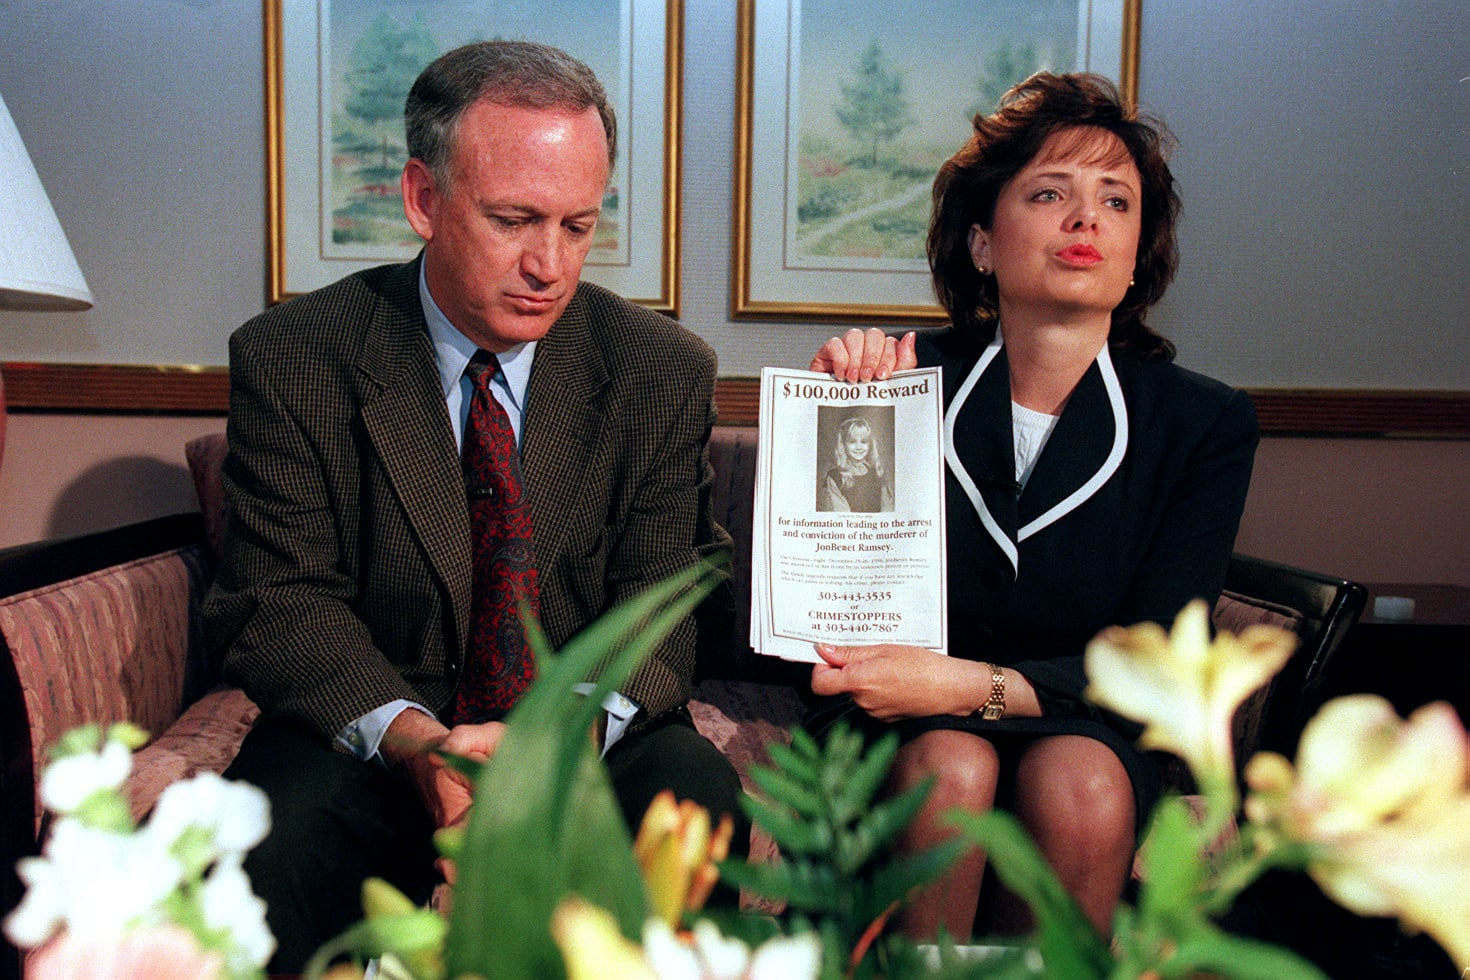 jonben chatrooms Community discussions and forums for jonbenet ramsey .